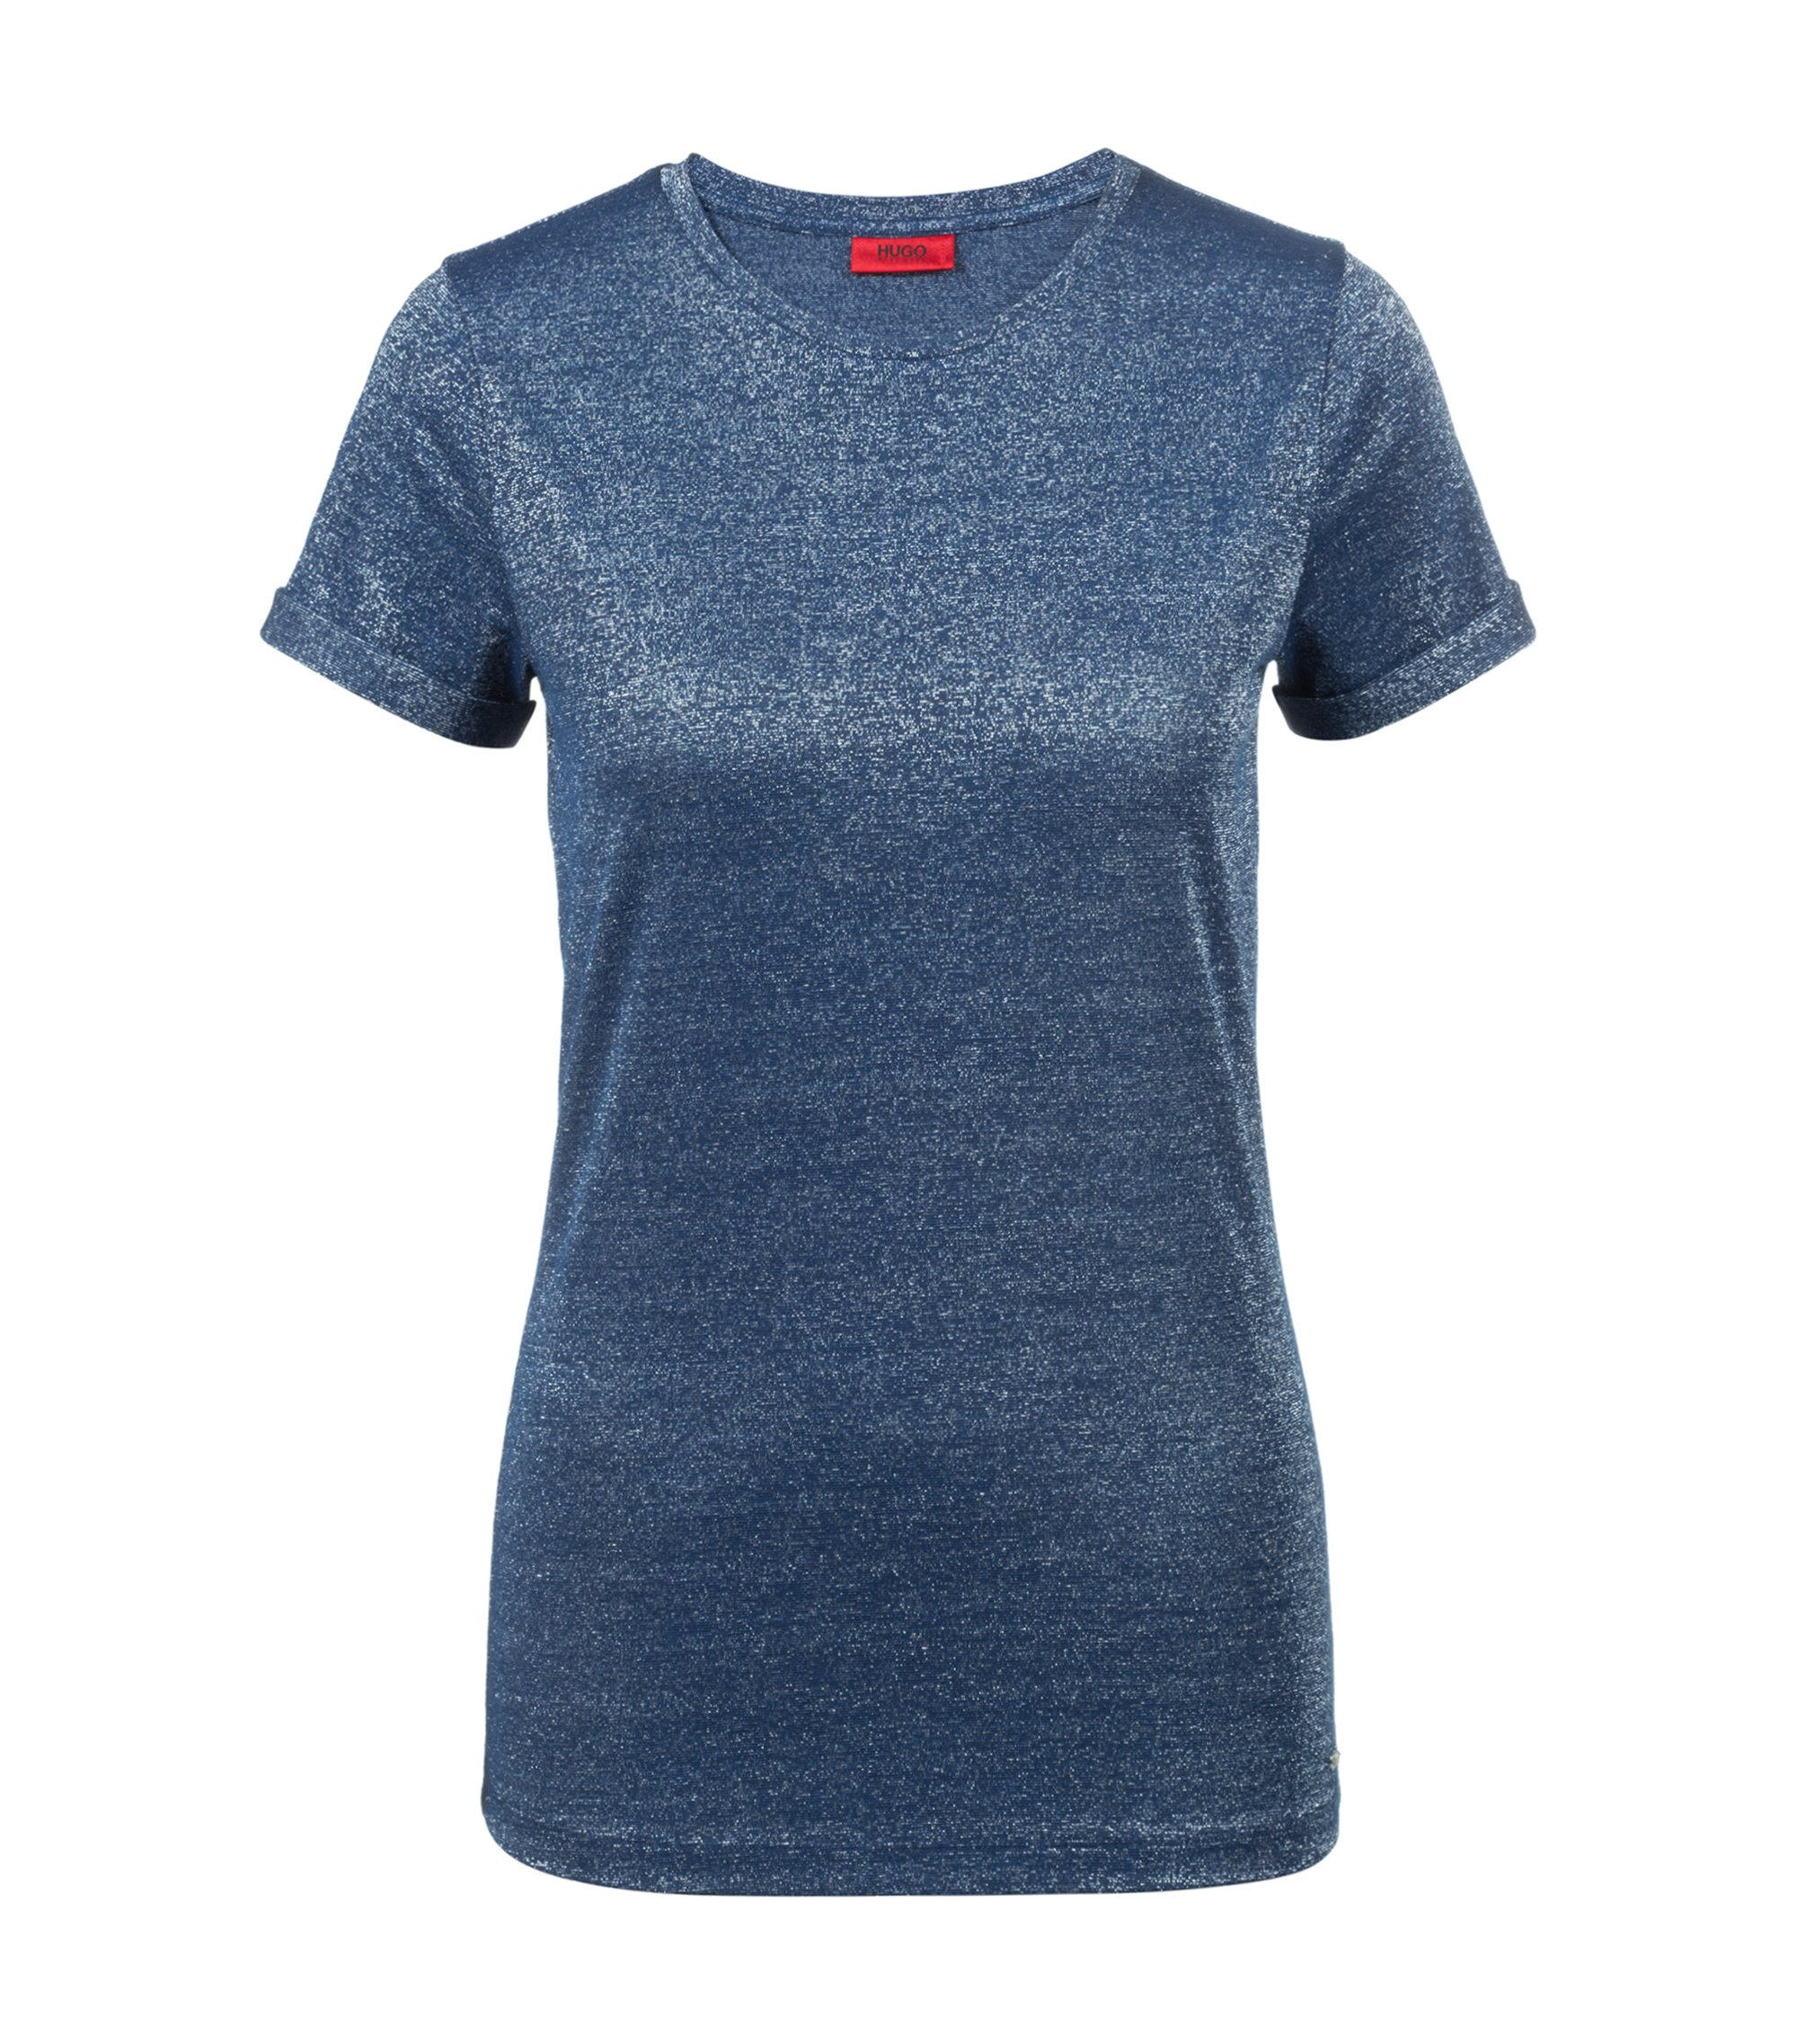 Slim-fit T-shirt in sparkly stretch-jersey fabric, Open Blue